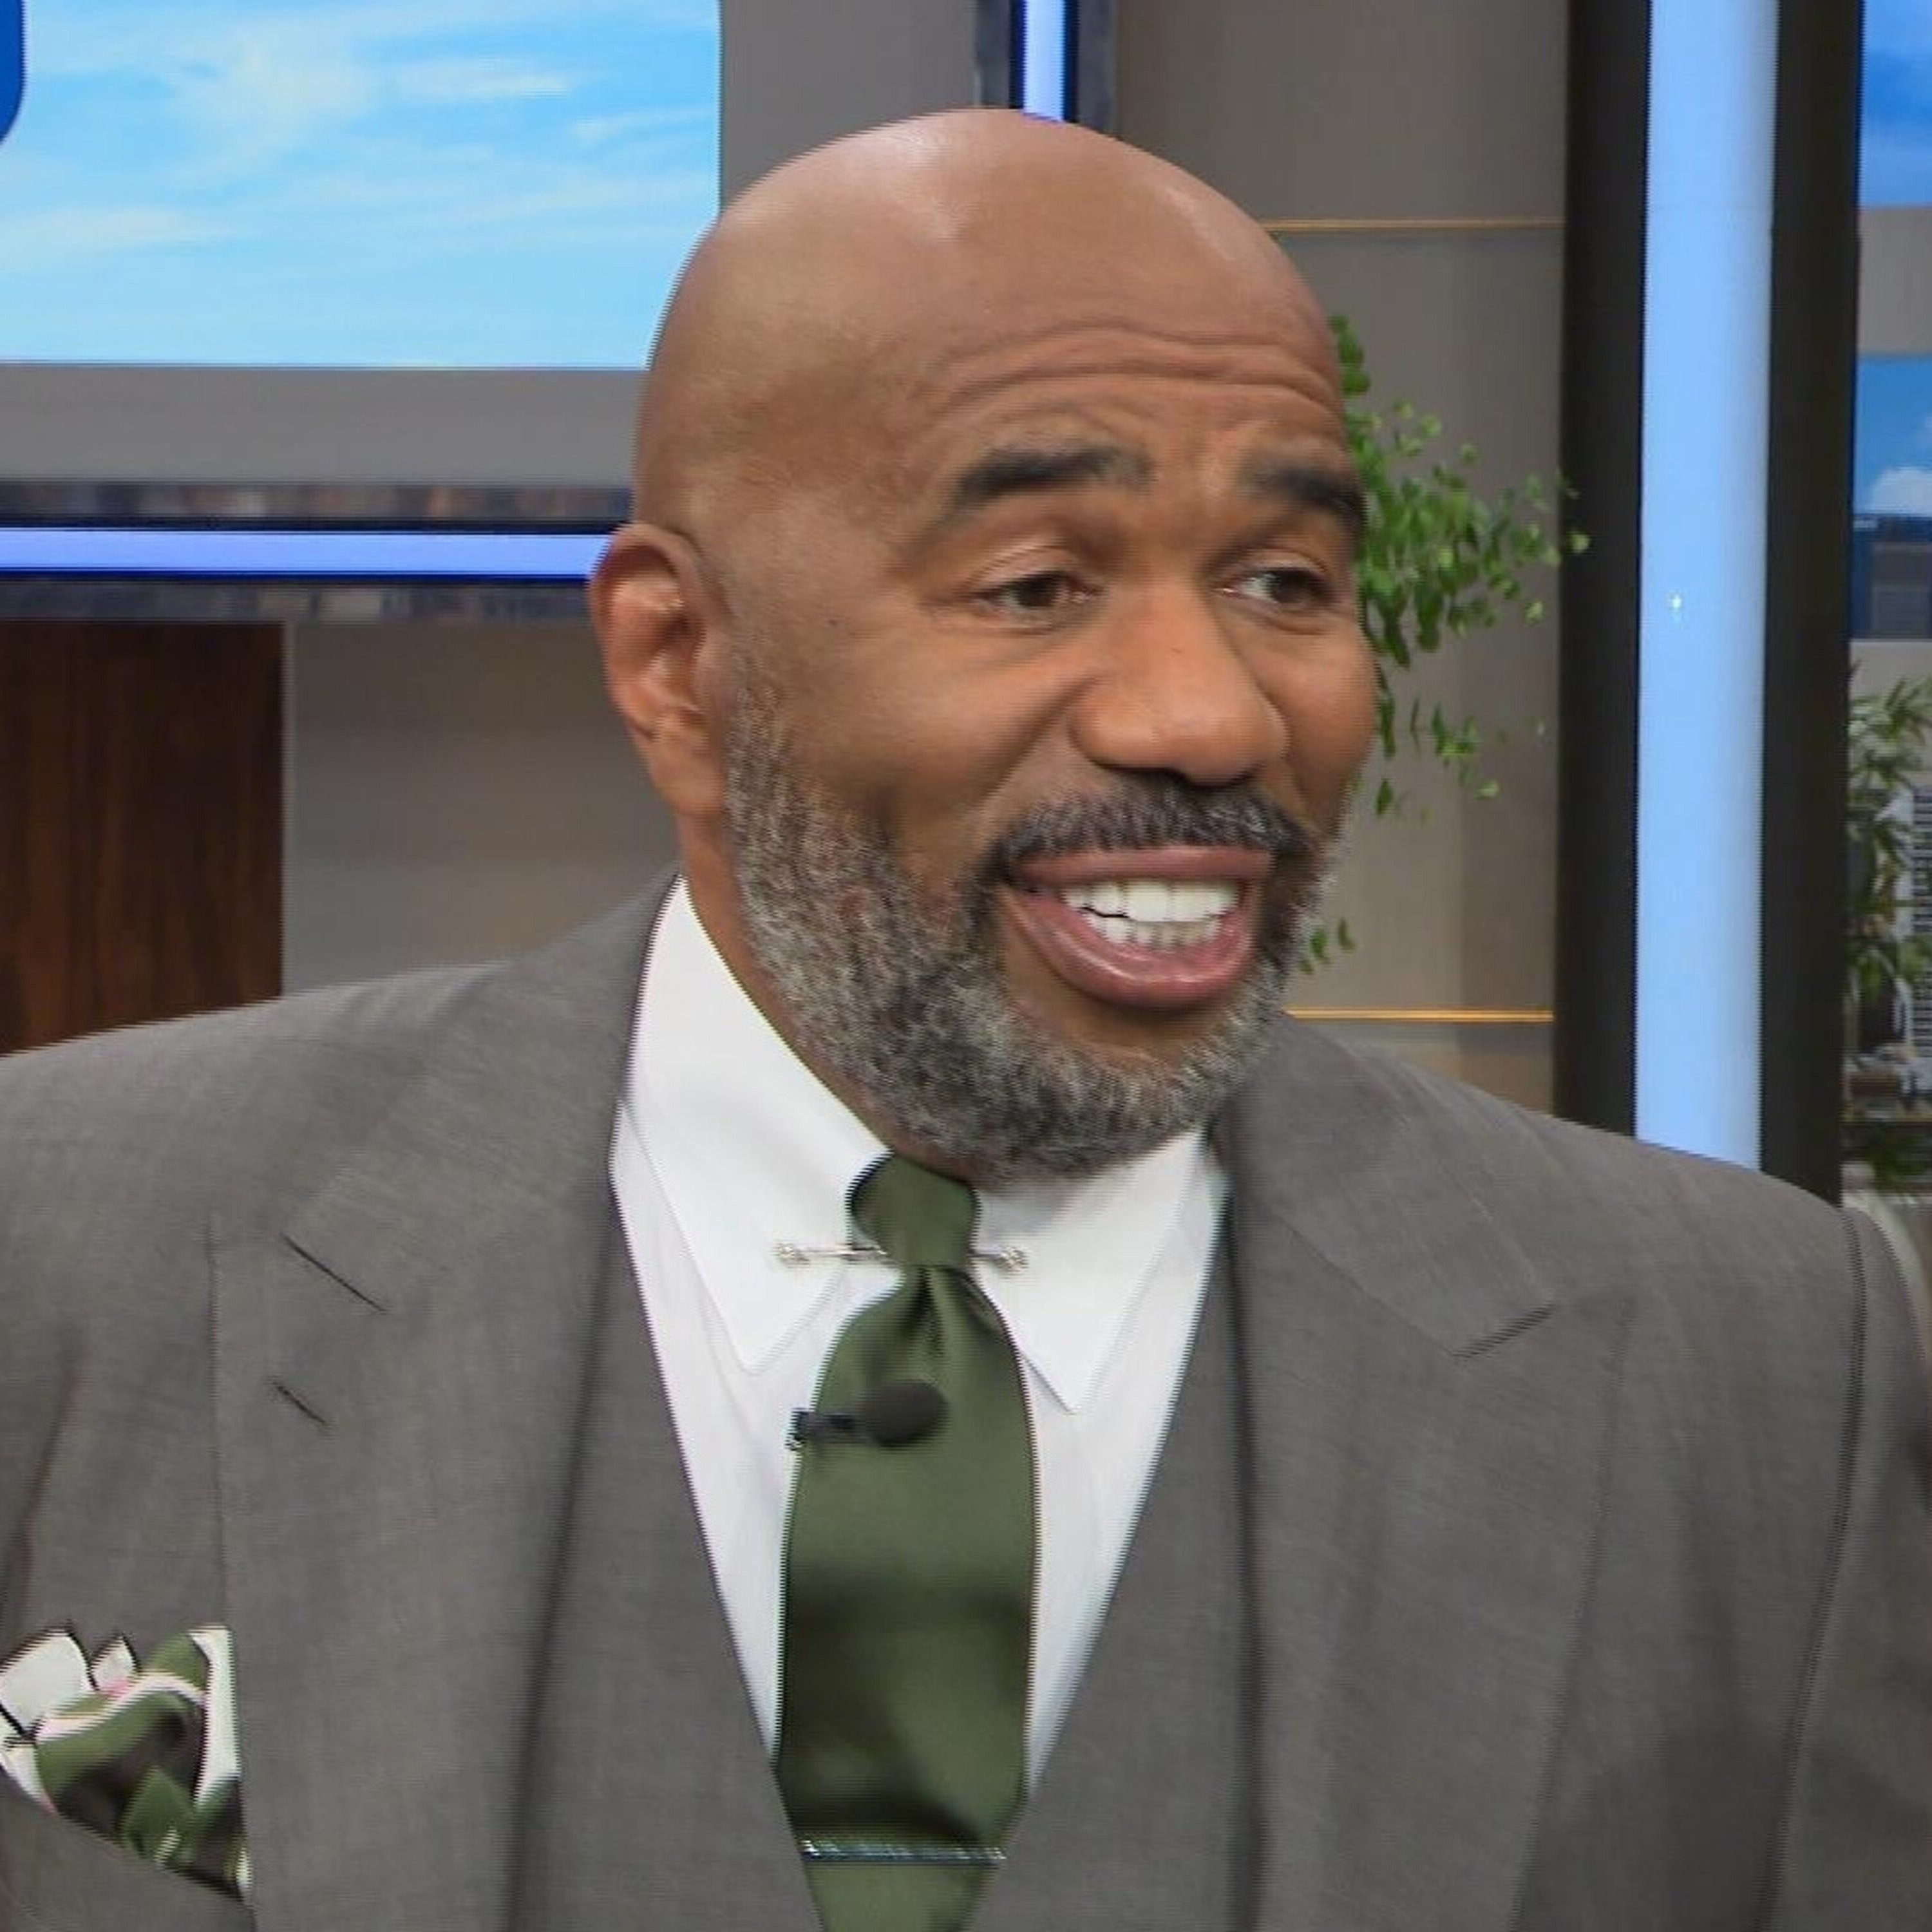 A full beard of Steve Harvey.